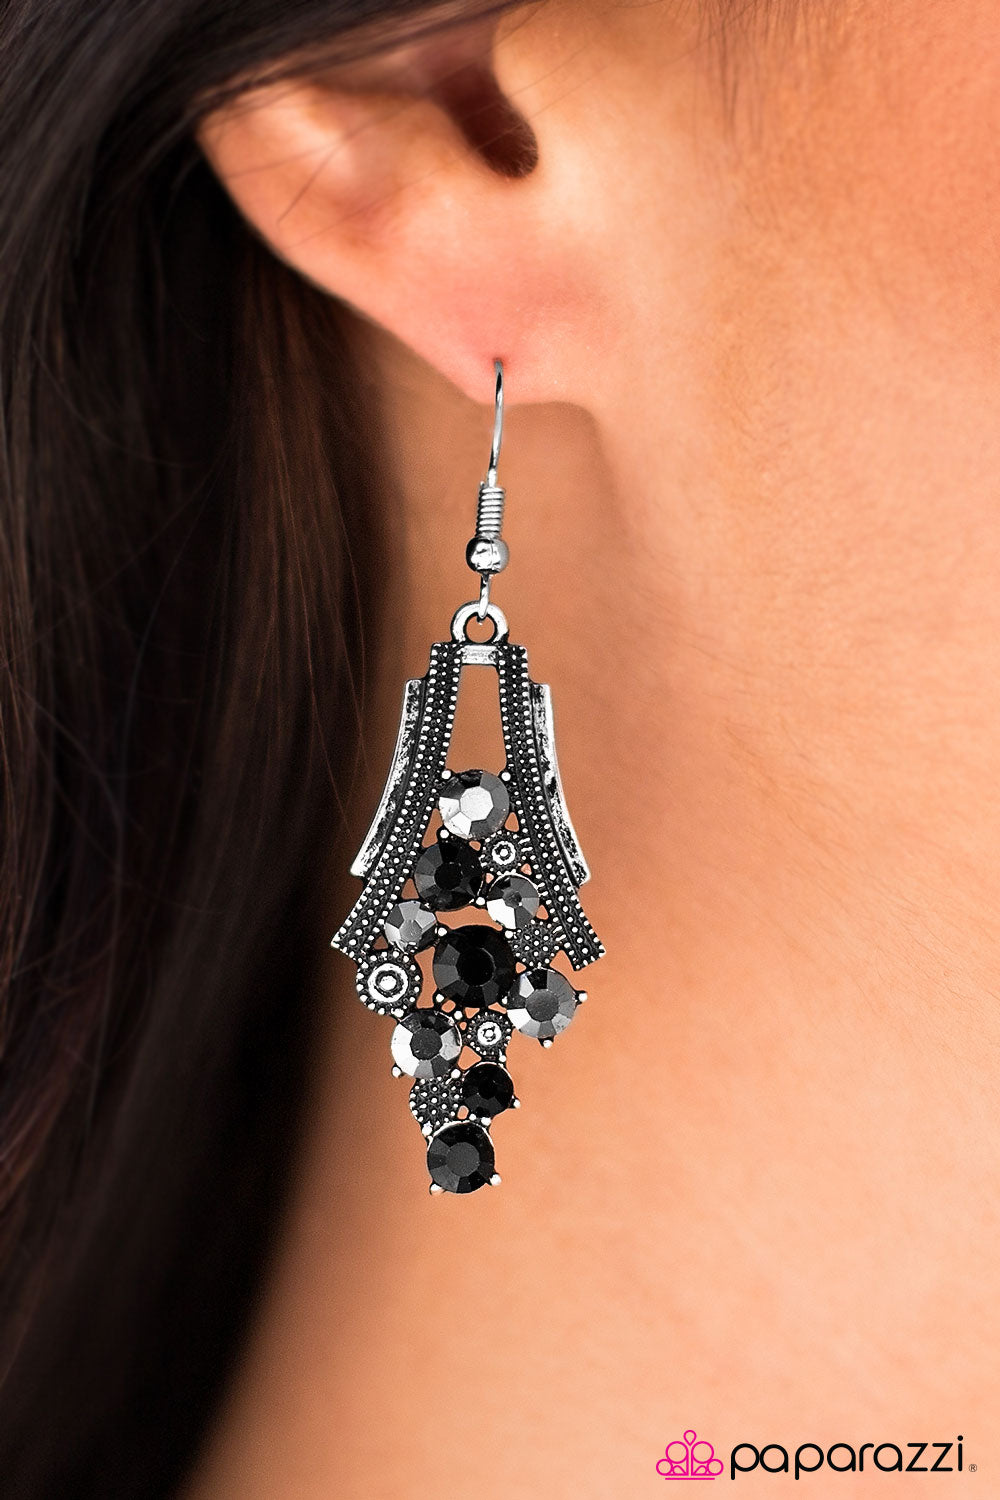 Starlight Samba - Black - Paparazzi earrings